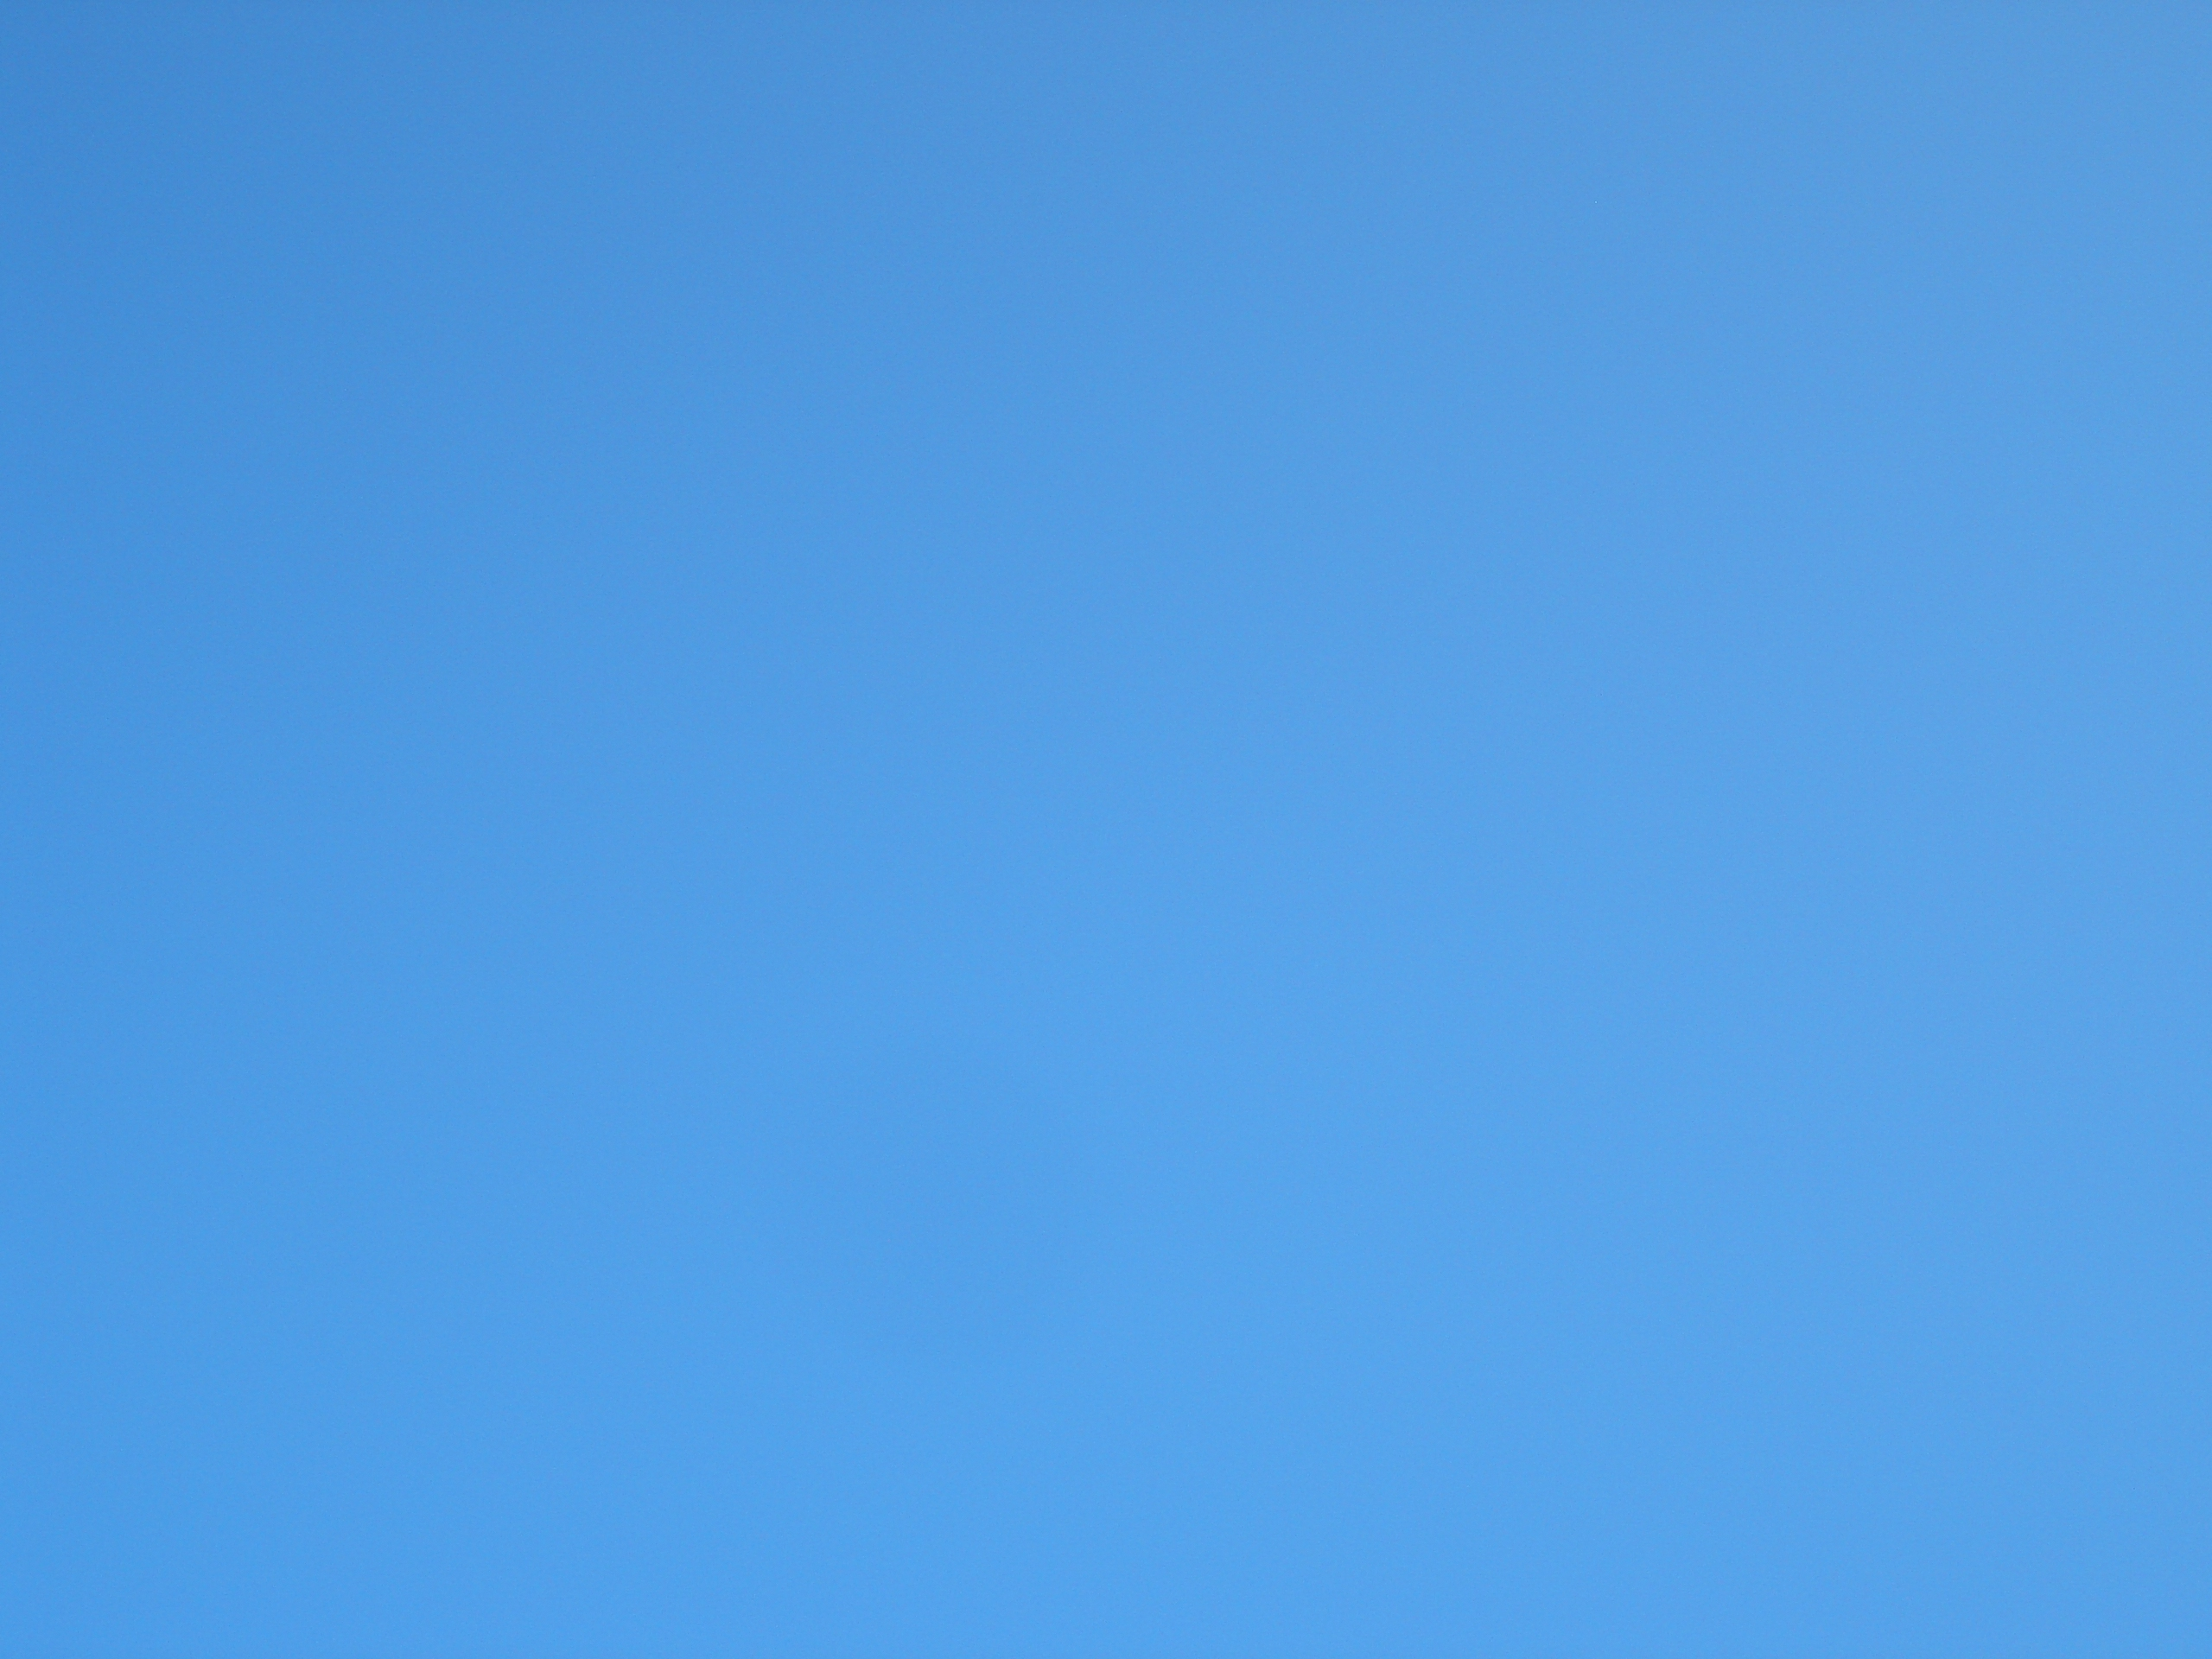 File:Cloudless blue sky.JPG - Wikimedia Commons